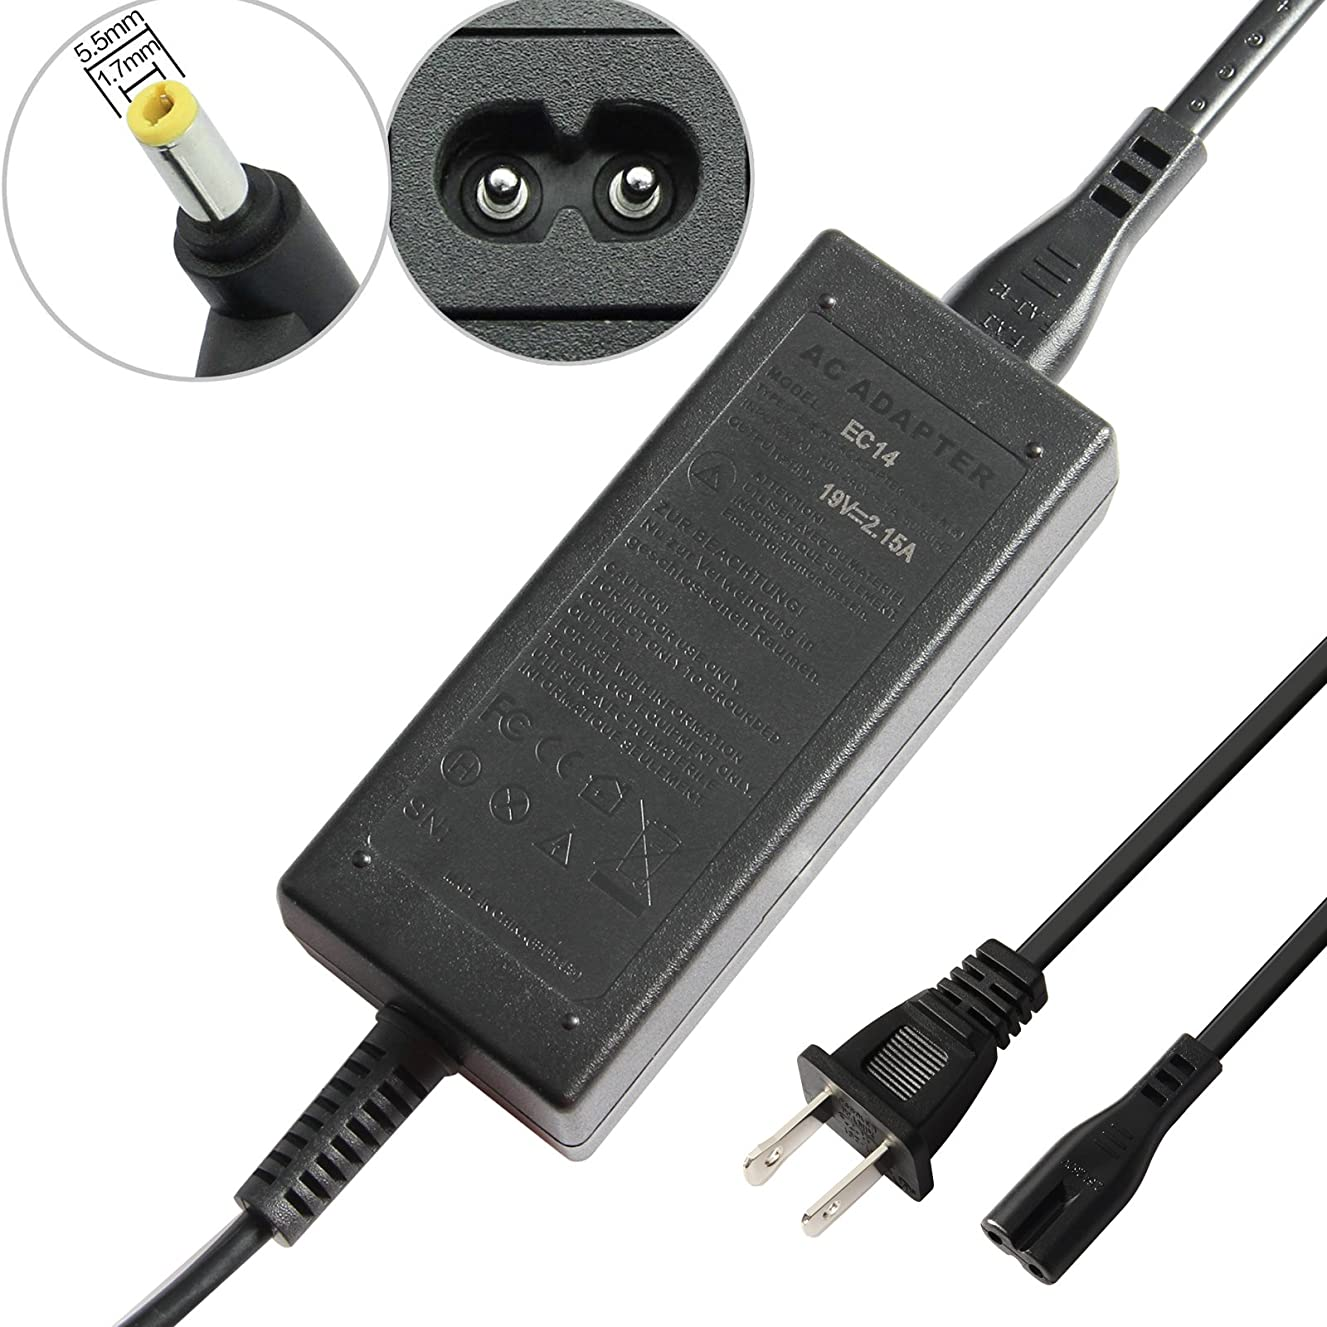 "Fancy Buying 40W AC Adapter Chager for Acer Aspire One 10.1"" 8.9"" Netbook A110 A150 D150 A0A110 A0A150 D250 ZG5 AO522 AO722 Series Acer Chromebook C700 C710 AC700 ADP-40THA + Power Supply Cord"